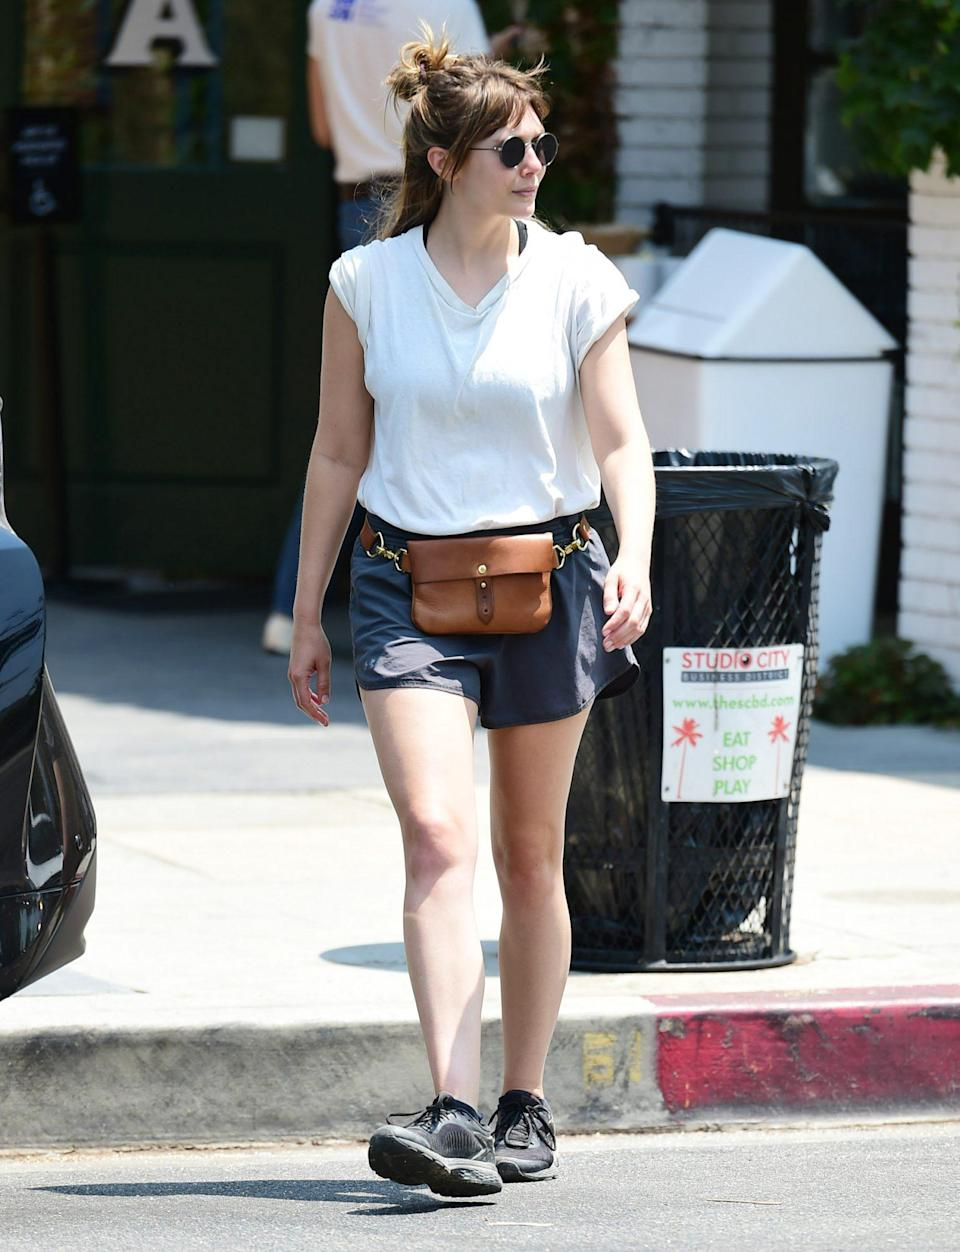 <p>Elizabeth Olsen steps out in a t-shirt, fanny pack, shorts and sneakers on July 15 in L.A.</p>